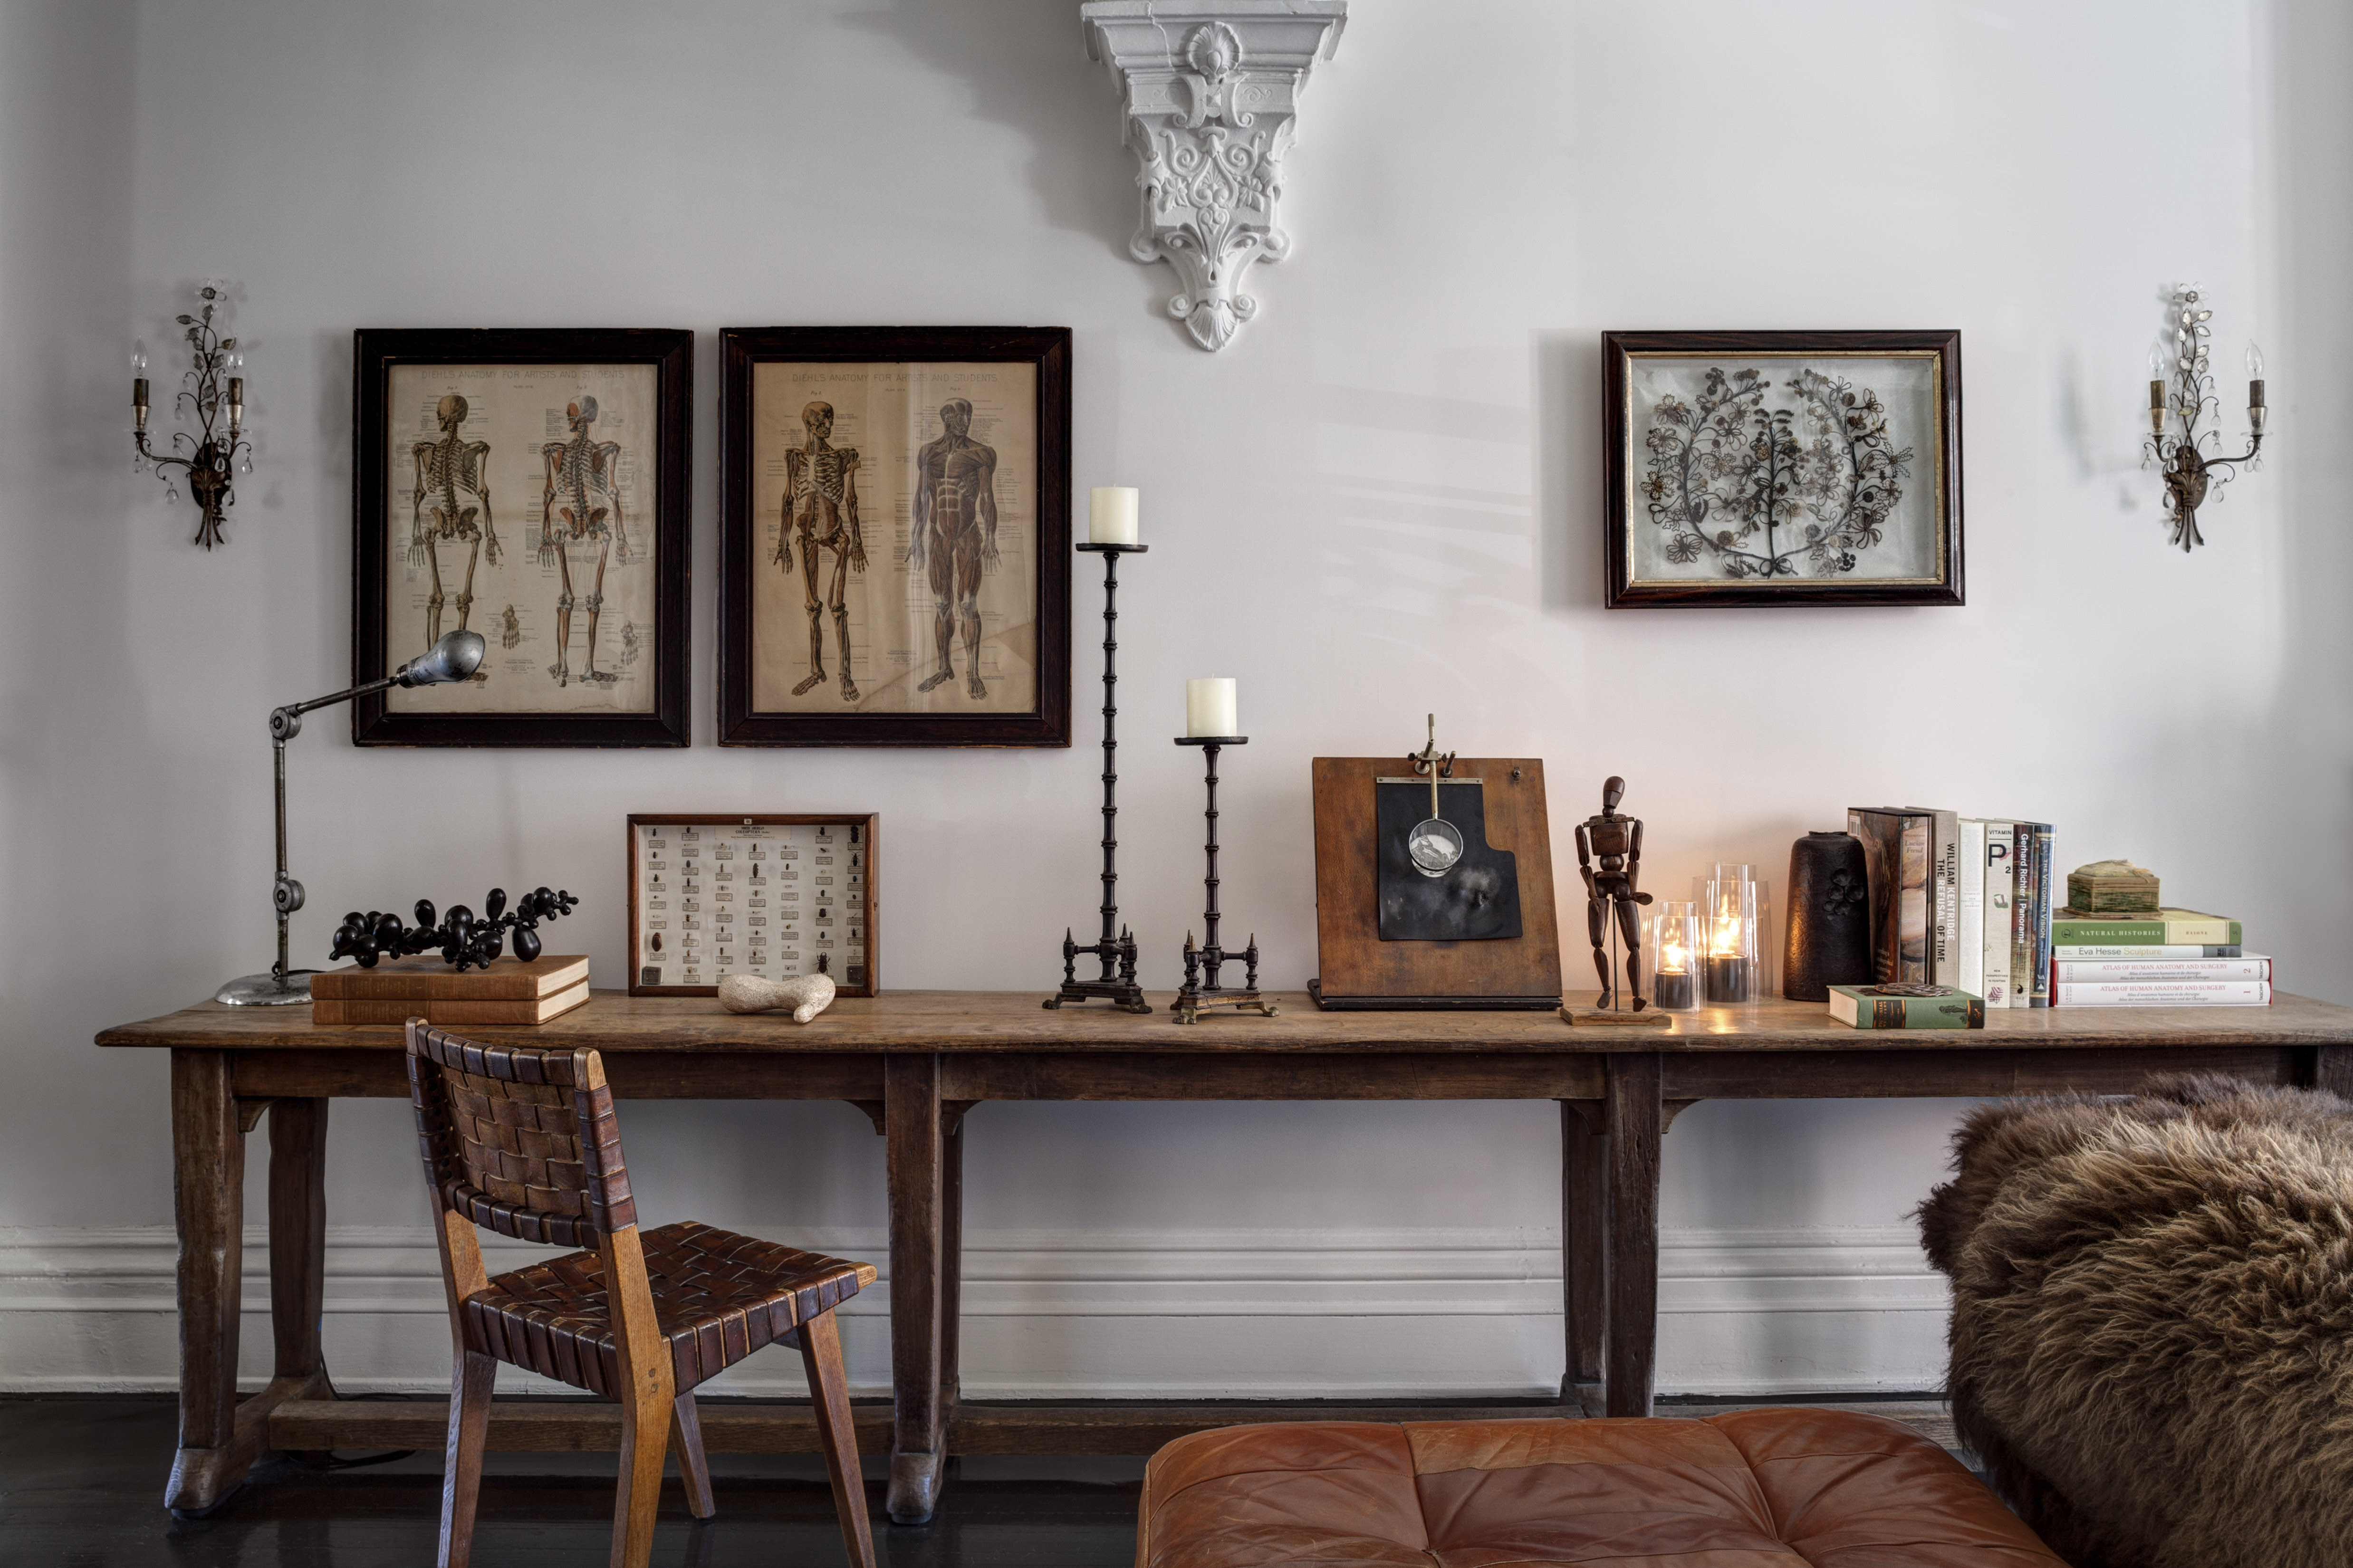 Framed prints of skeletons and a mourning wreath hang over a Belgian console table in the home of Tracy Martin, proprietor of the soon-to-open Morbid Anatomy Museum in Brooklyn.